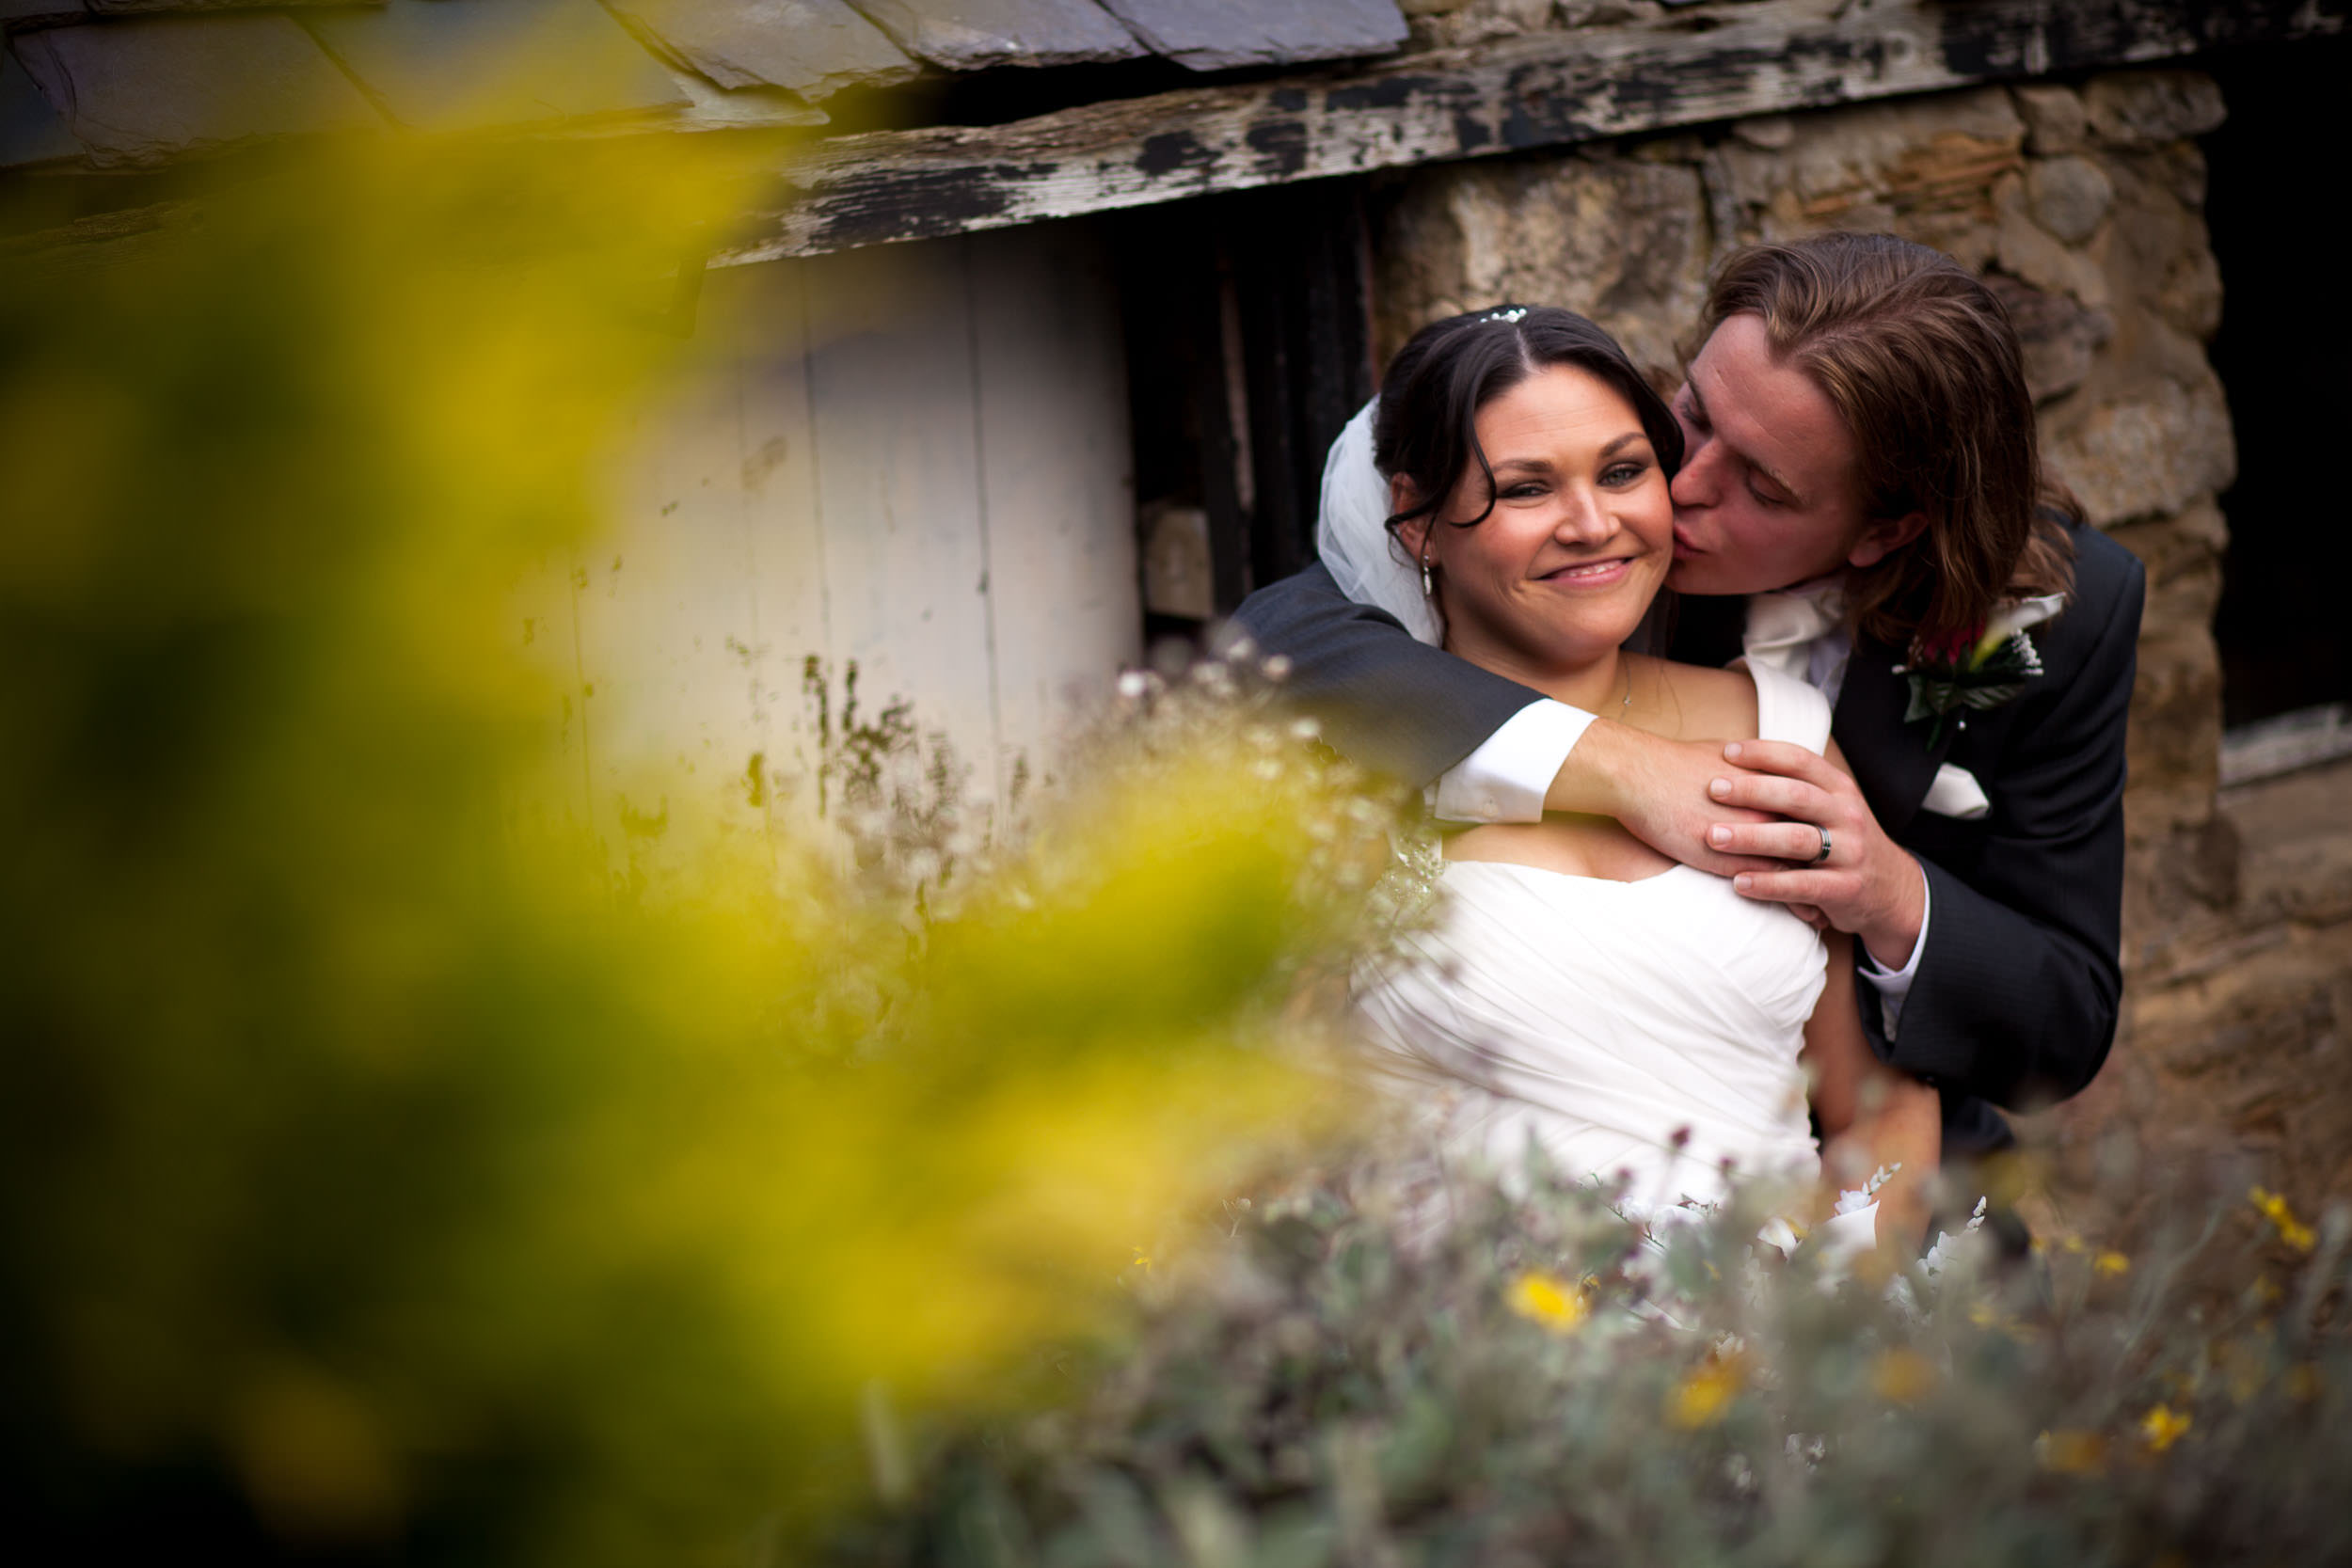 Bride and groom kiss with flowers in foreground